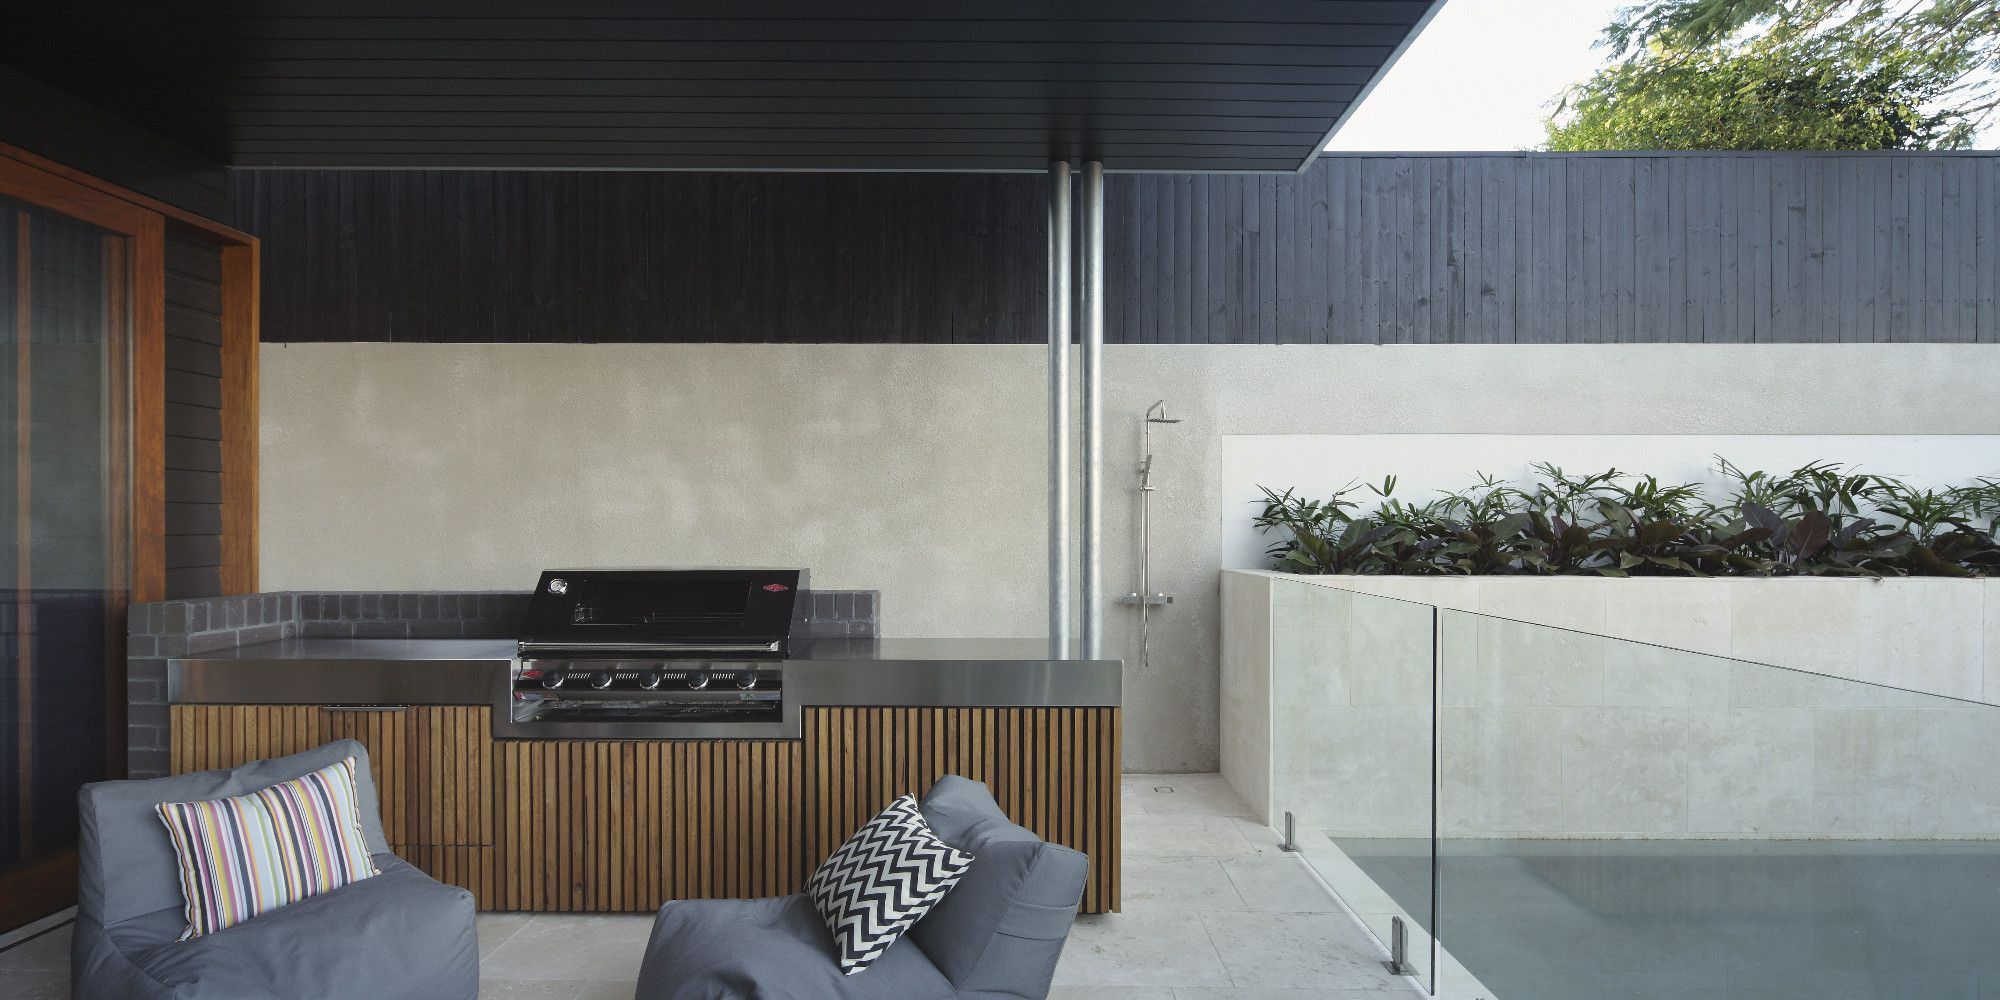 Wilden Street House, Paddington Australia by Shaun Lockyer